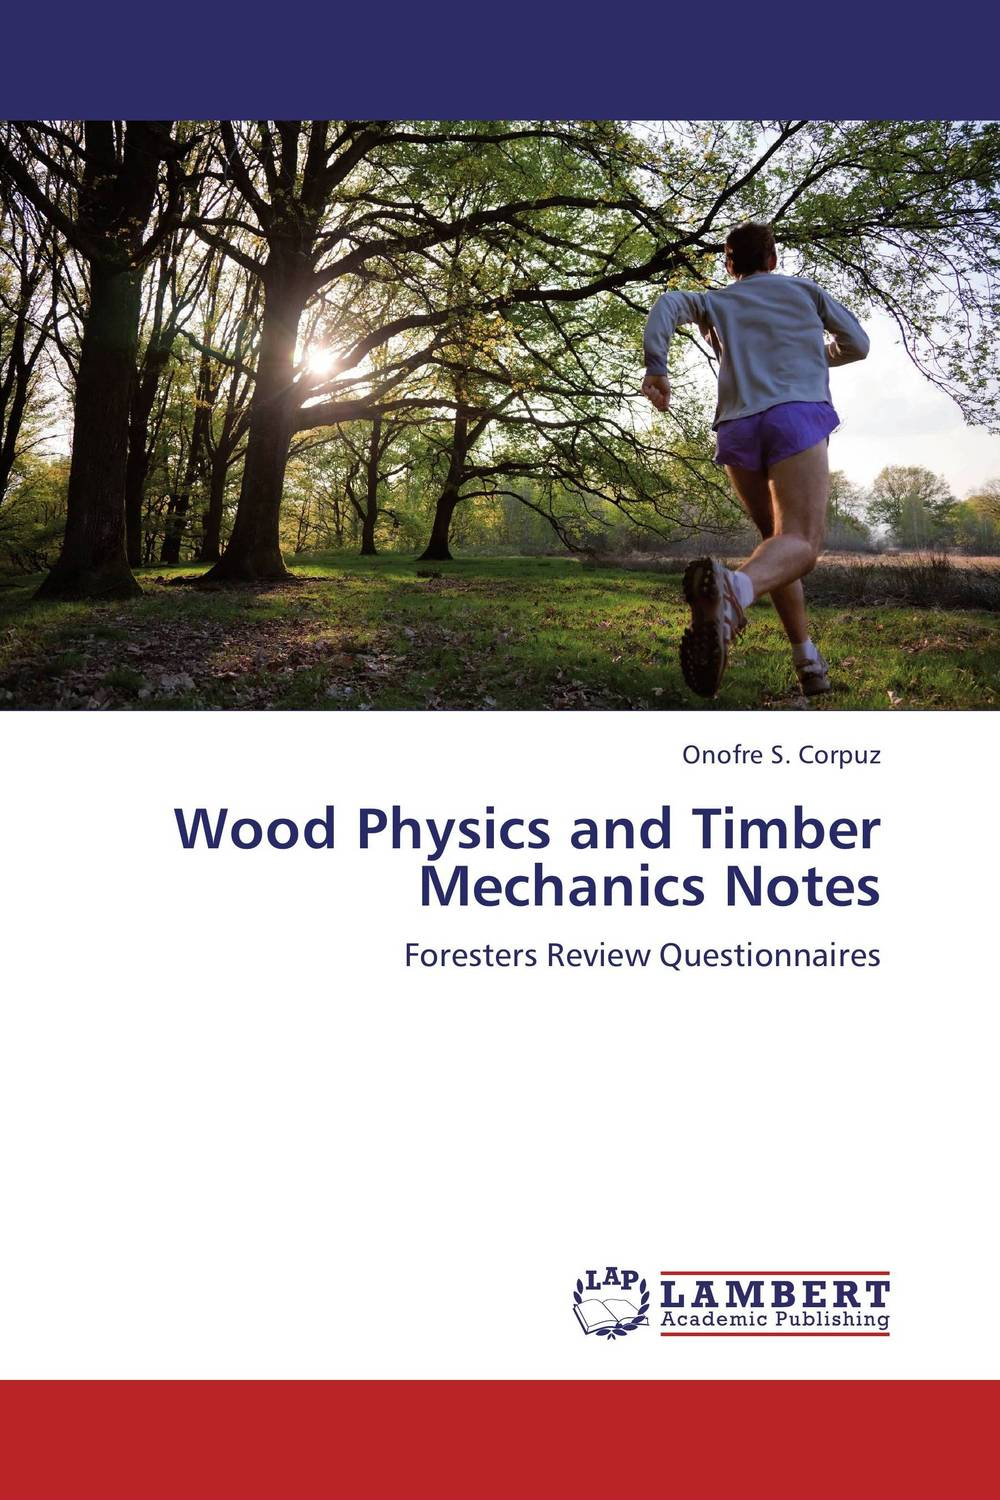 Wood Physics and Timber Mechanics Notes